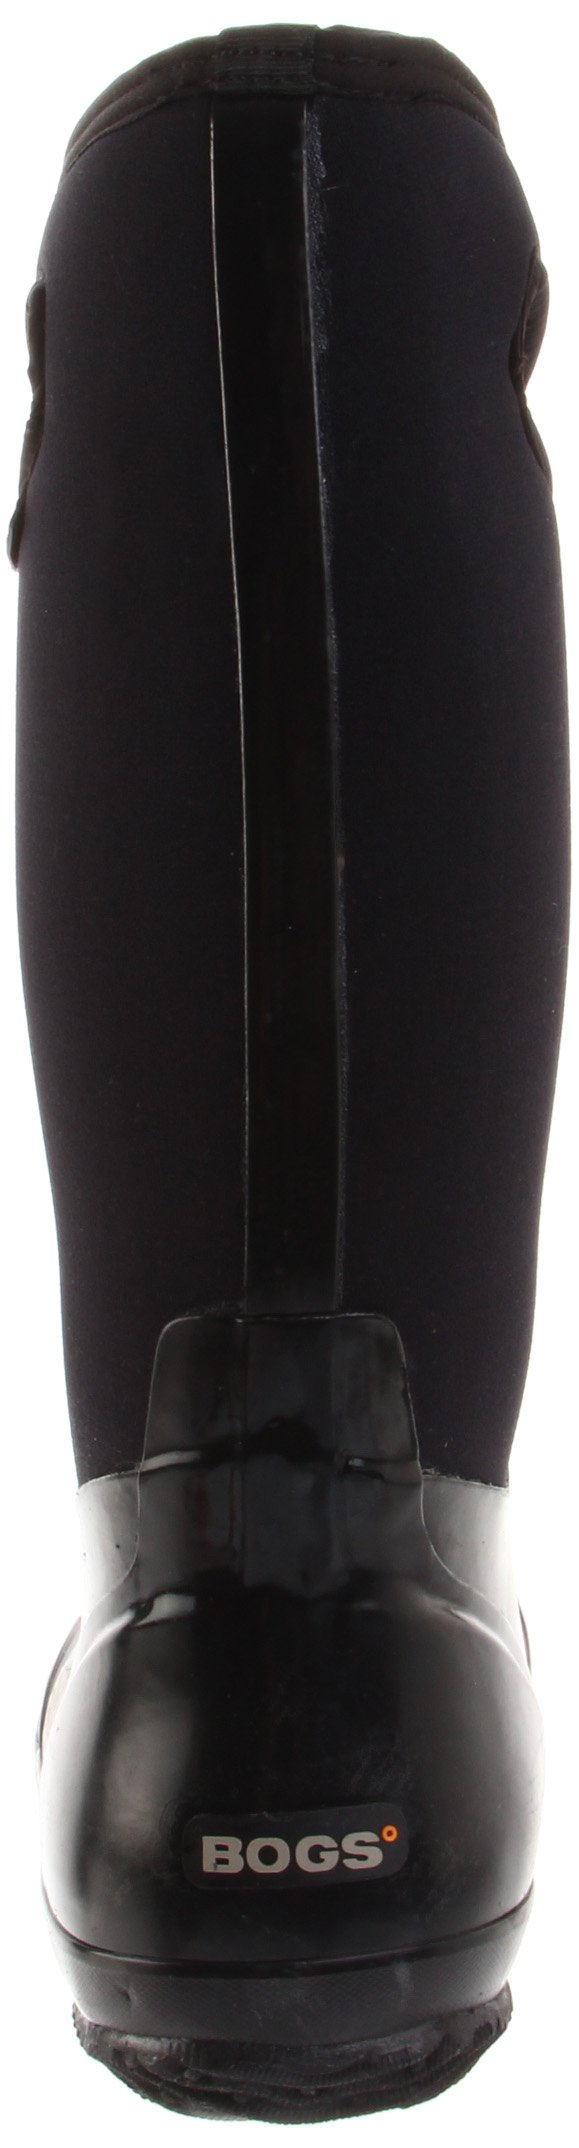 Bogs Women's Classic High Handle Waterproof Insulated Boot,Black Smooth,7 M US by Bogs (Image #2)